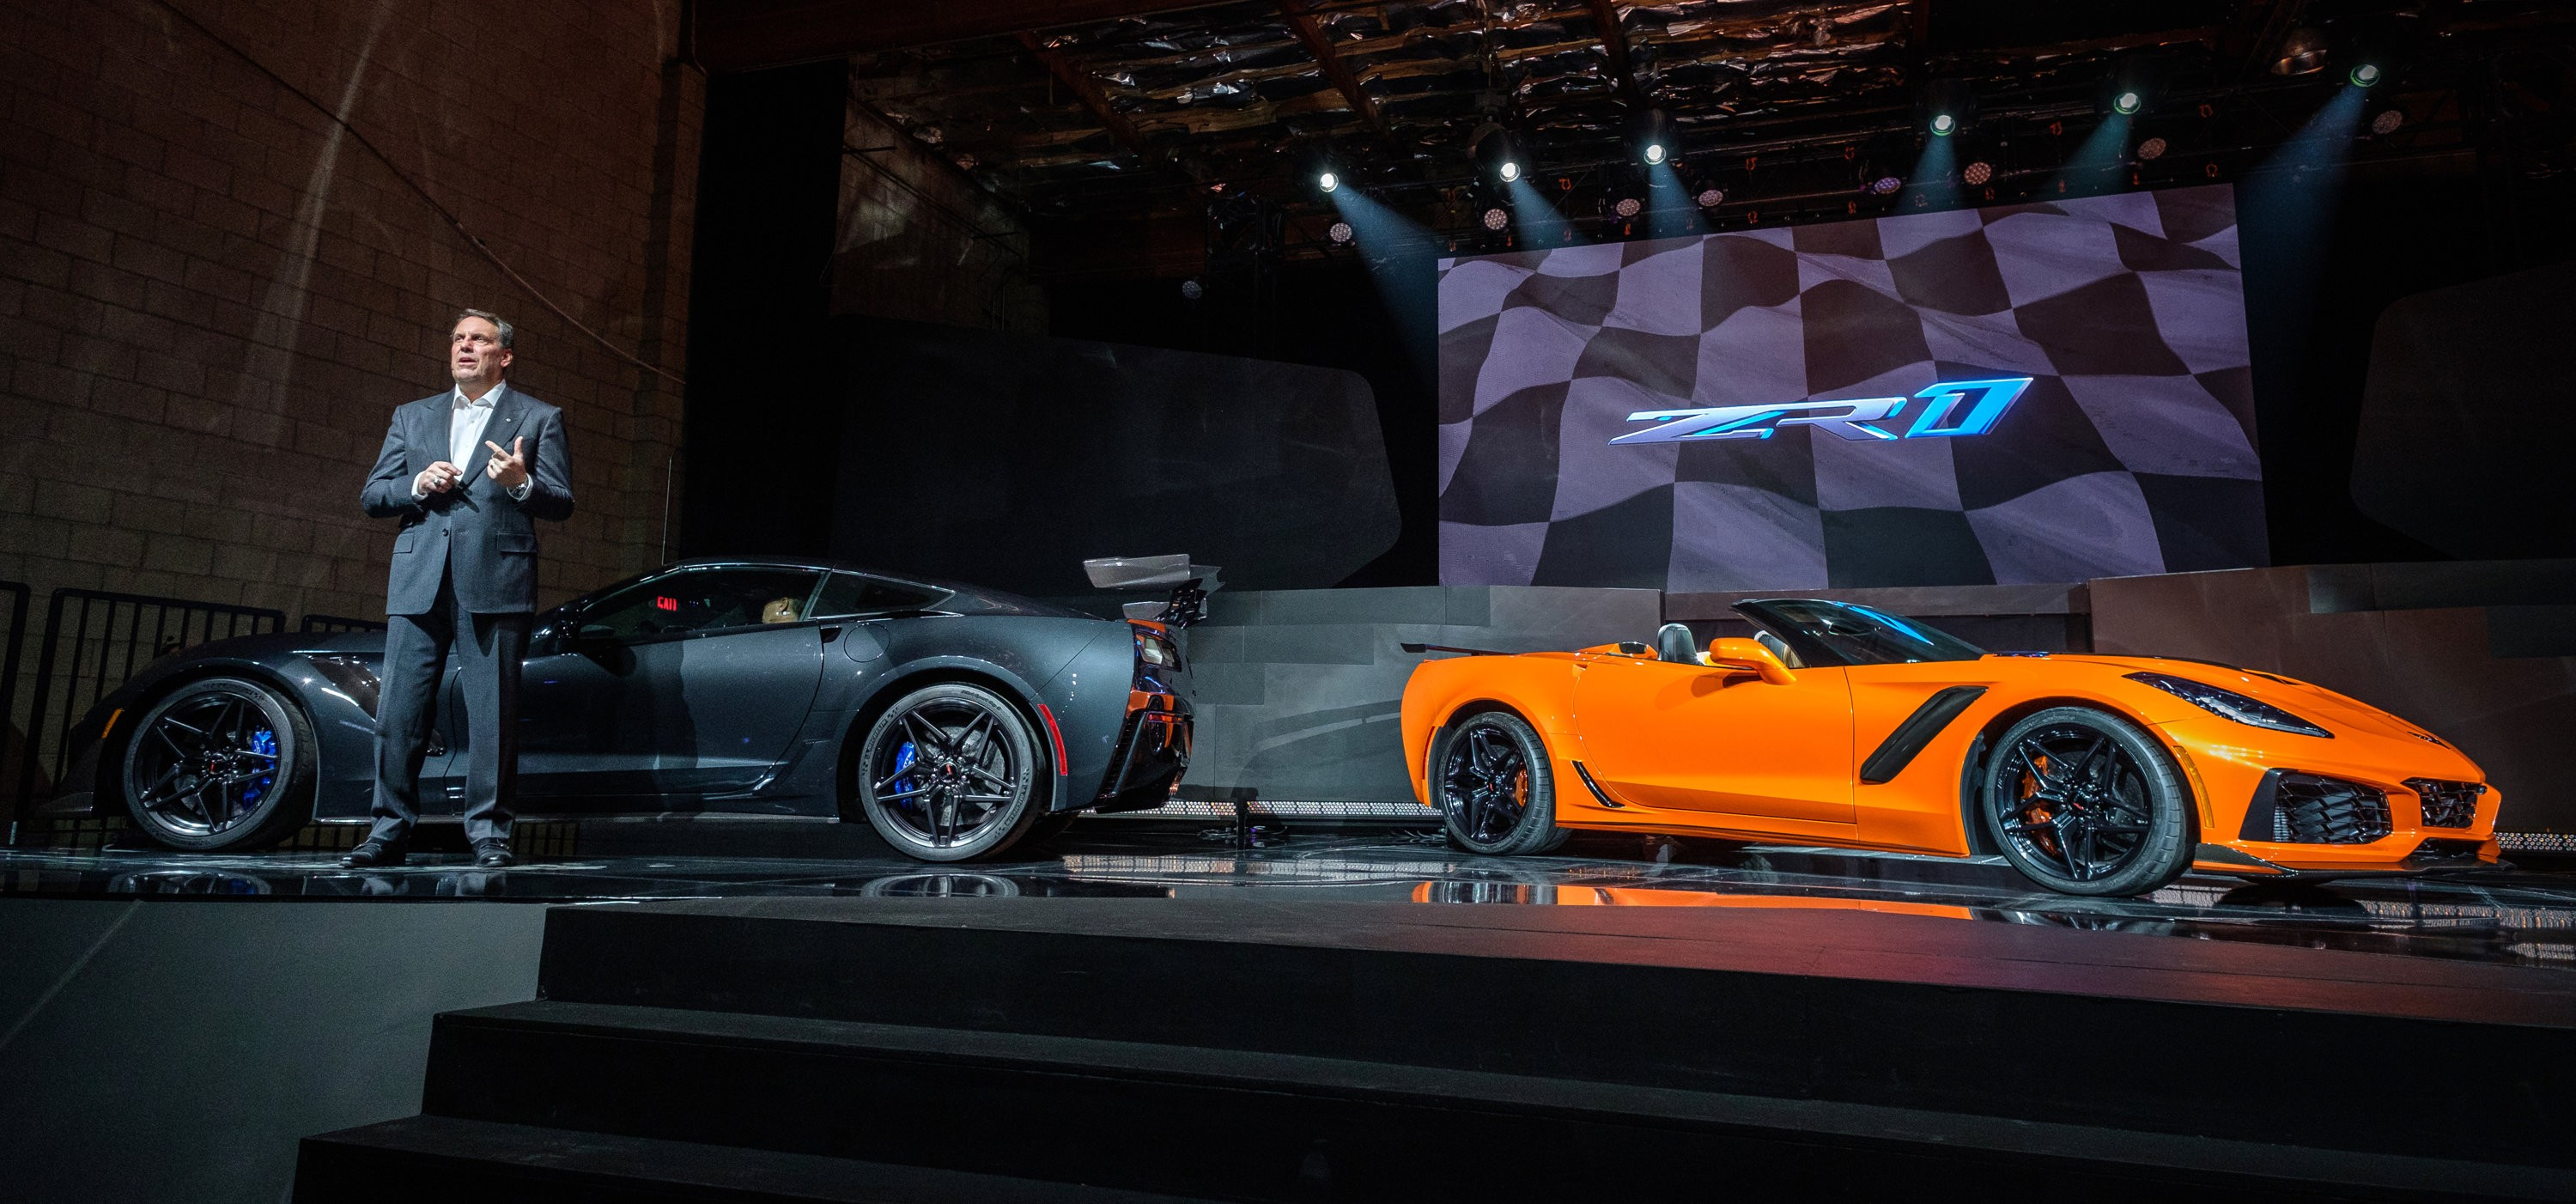 Mid-Engined 2019 Chevrolet Corvette (C8) to Debut at 2018 Detroit Auto Show - autoevolution